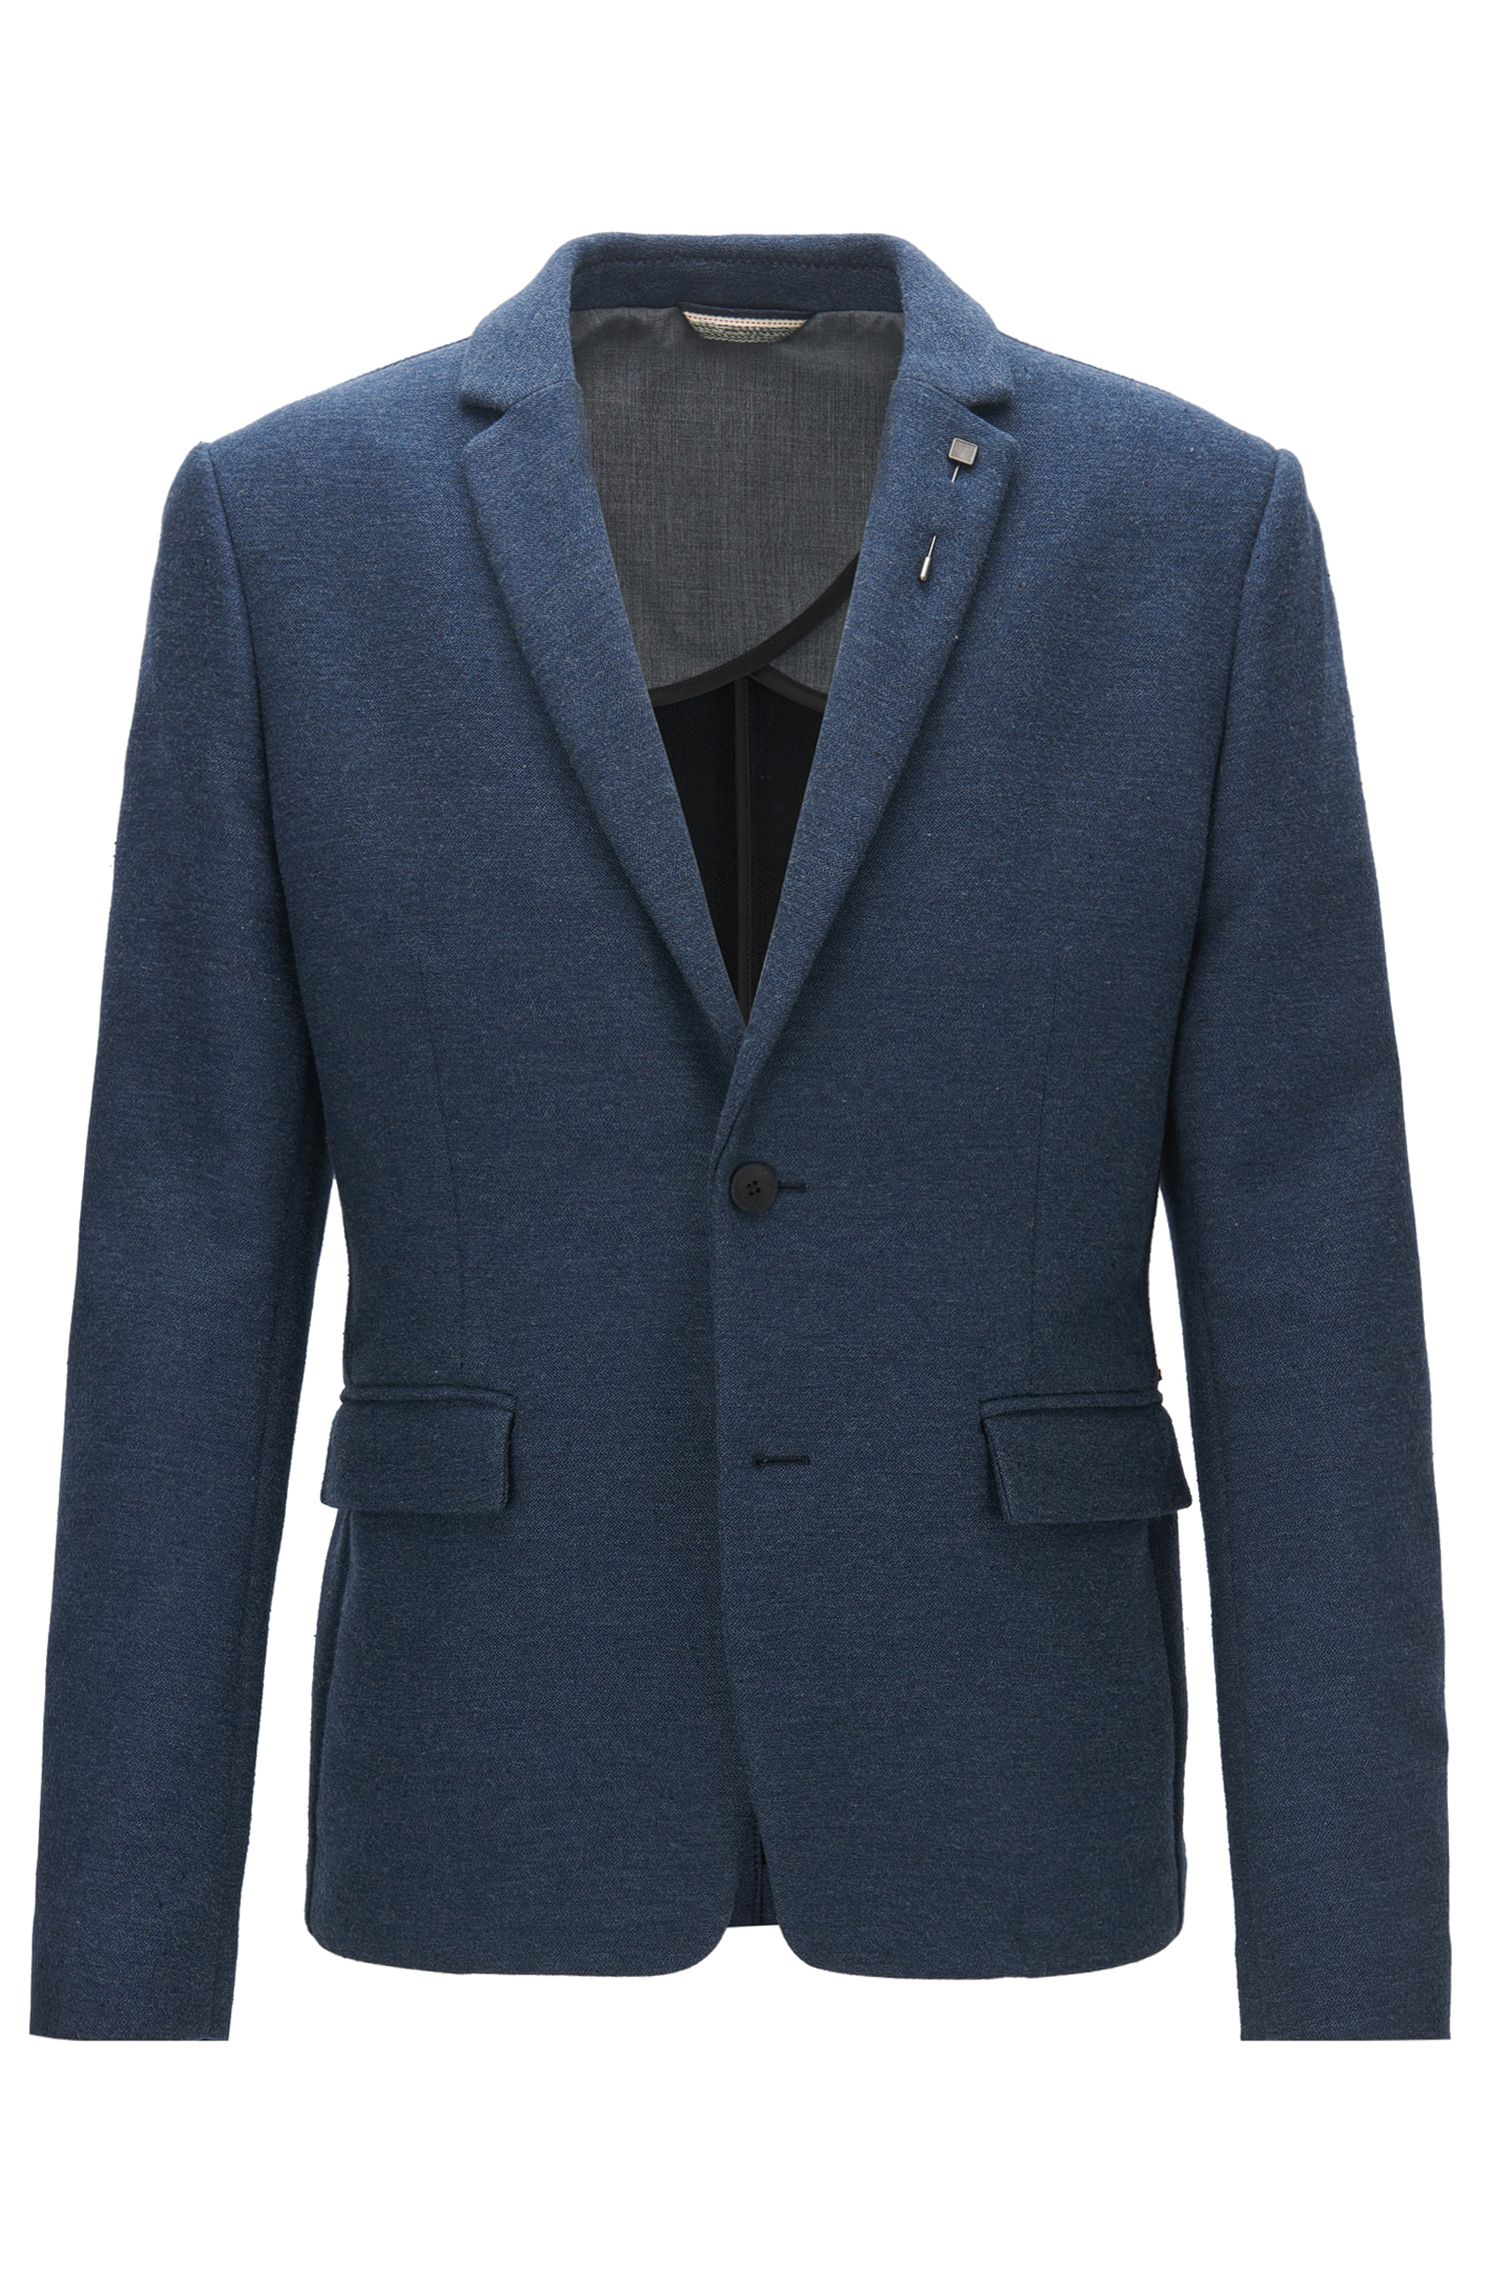 Slim-fit jacket in a cotton blend